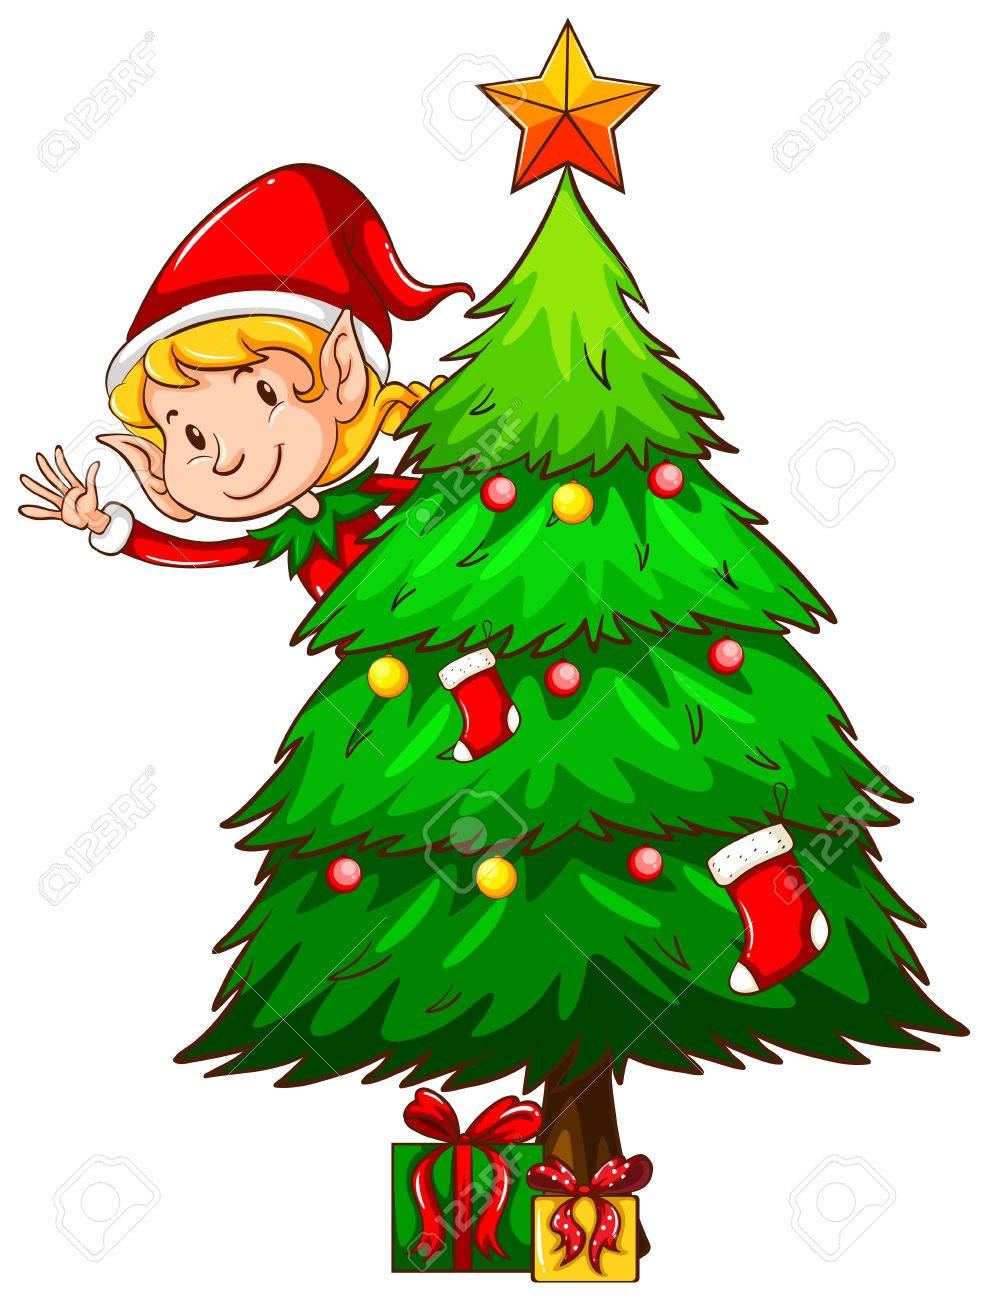 Illustration Of A Christmas Tree And An Elf